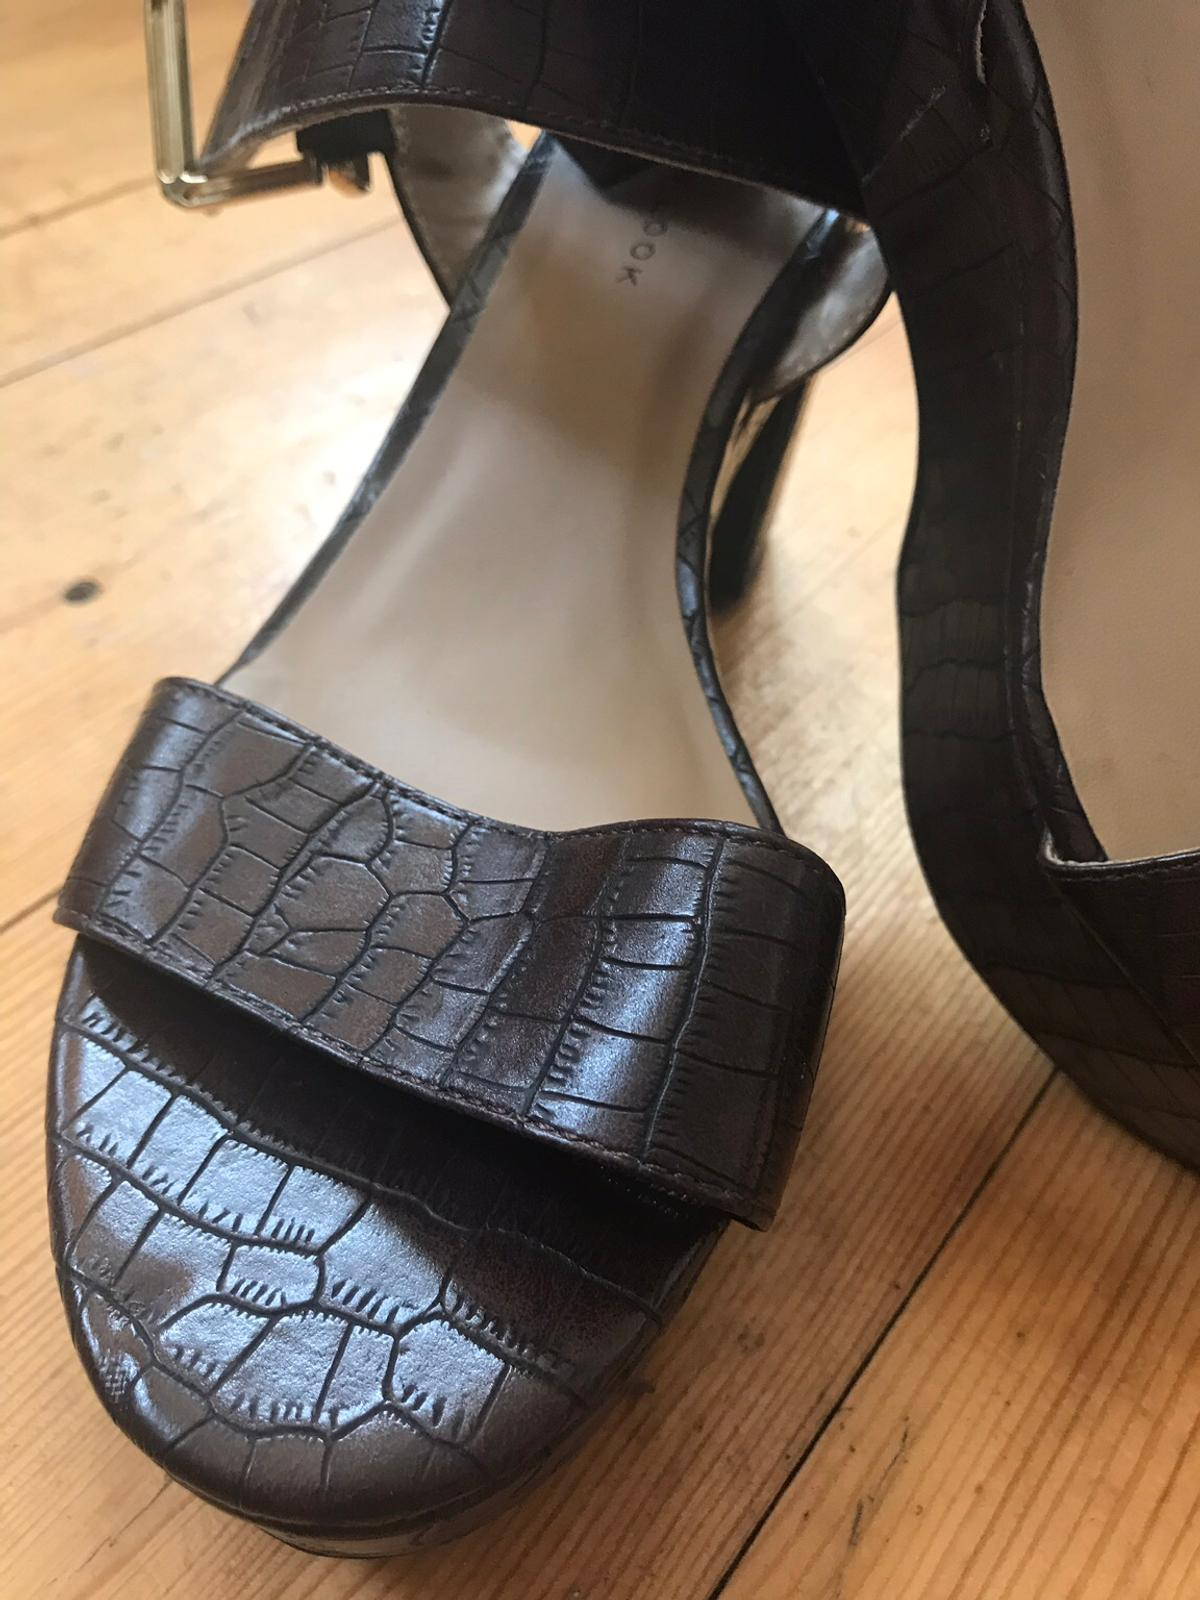 Beautiful heels for sale which have never been worn.